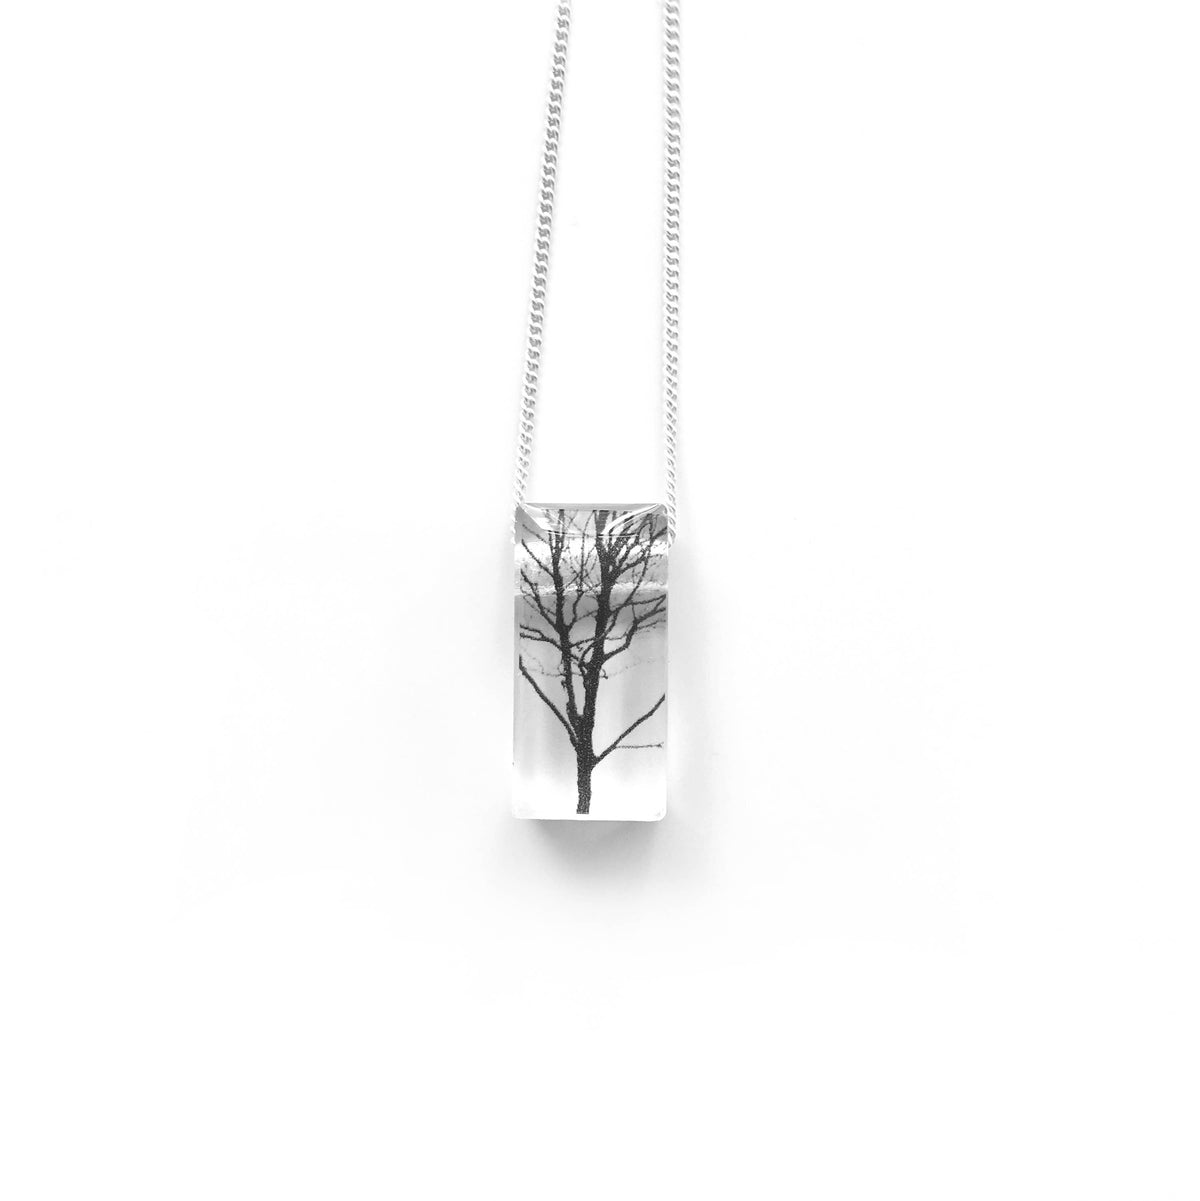 Black Drop Designs - Tiny Tree Necklace